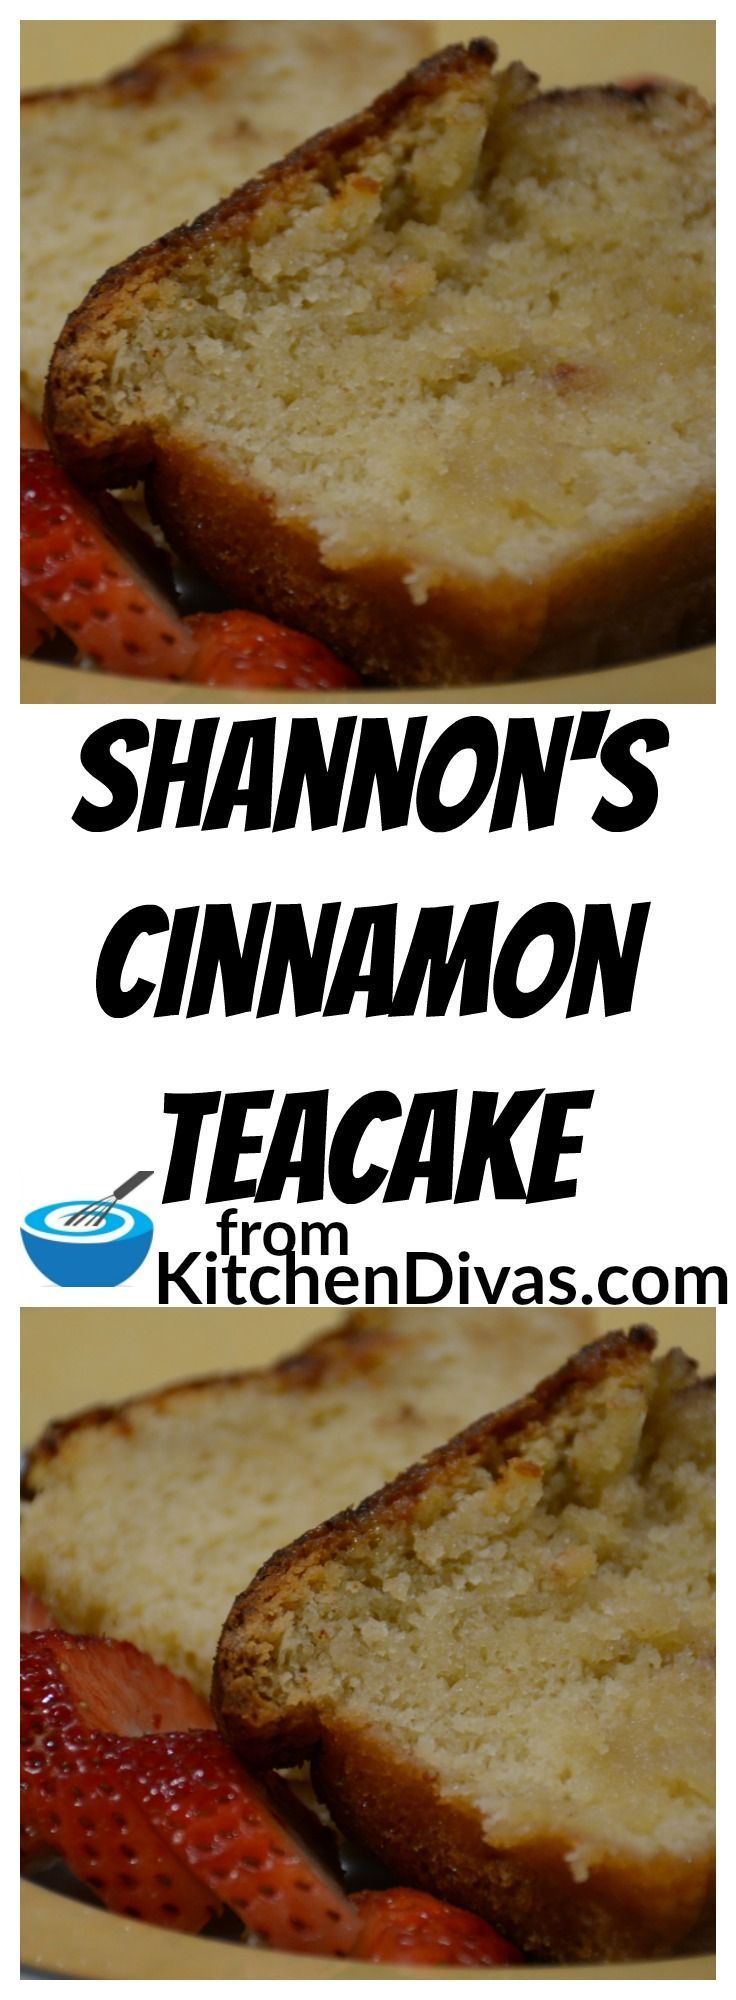 This simple cinnamon tea cake is a wonderfully light, fluffy and sweet treat! Perfect to enjoy with some butter and a cup of tea or coffee. #teacake recipe #dessert